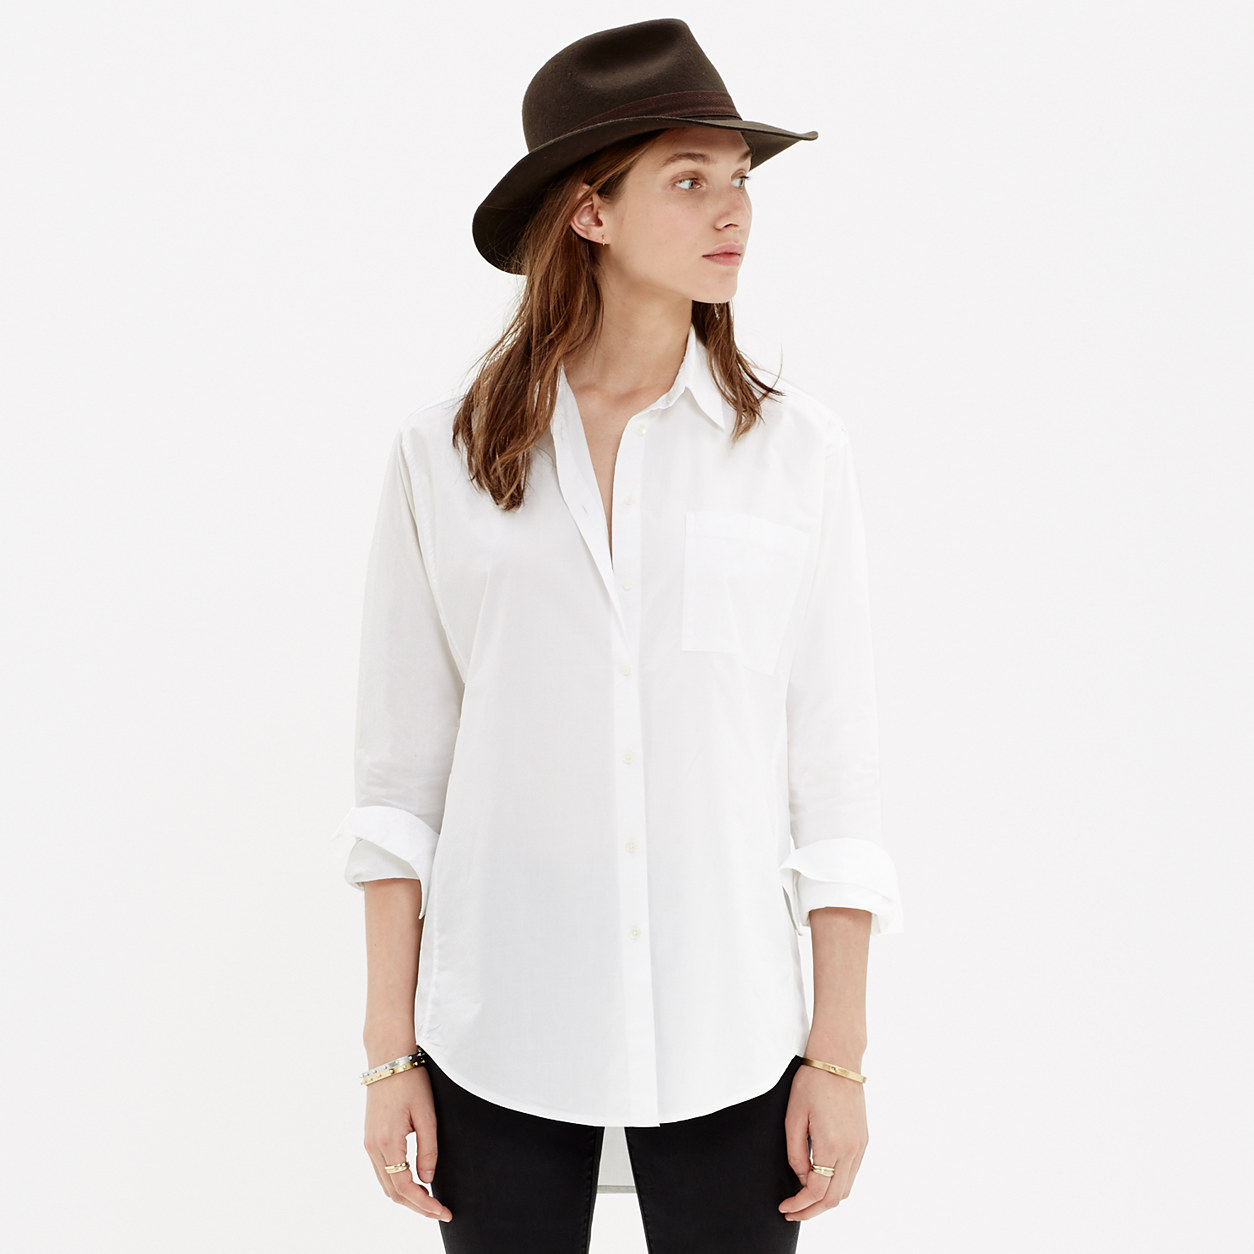 Oversized Button-Down Shirt : button-up & popover shirts | Madewell